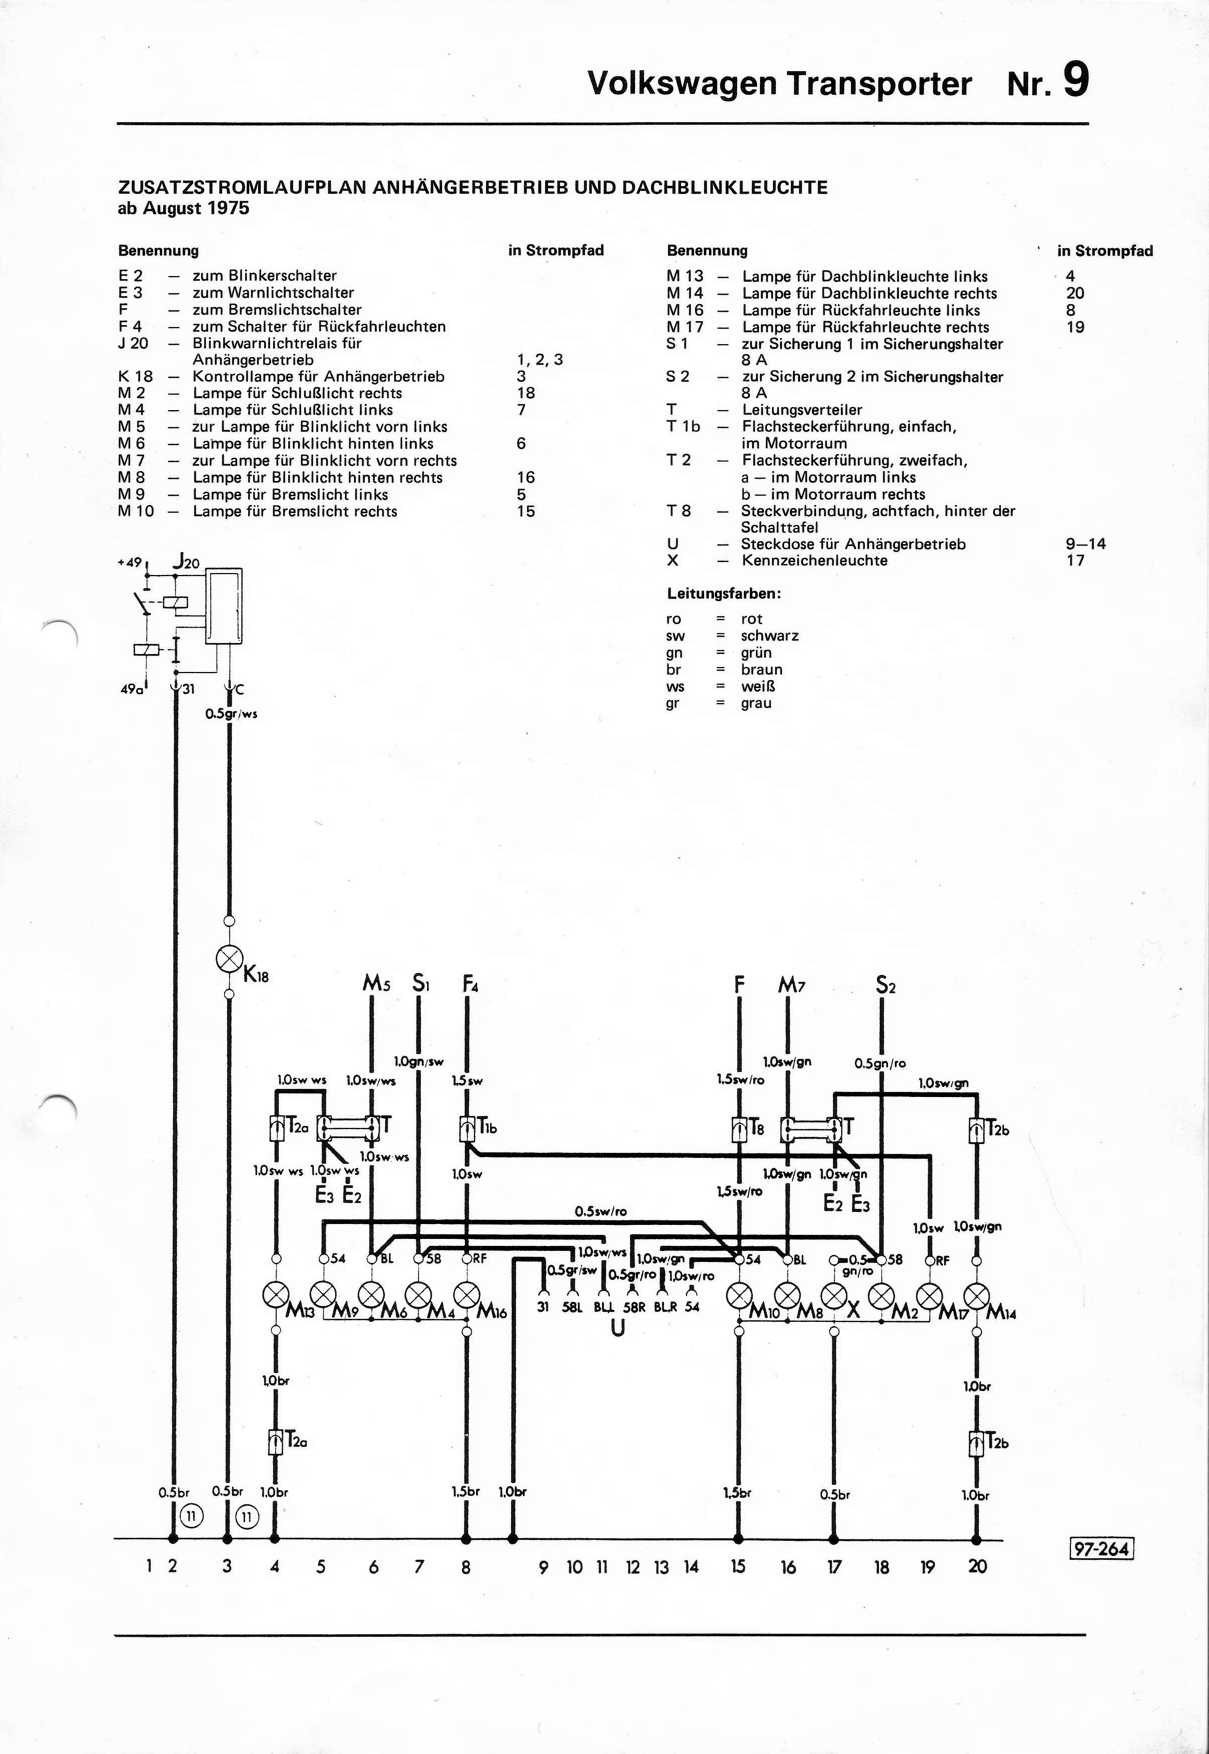 Wiring Diagram For 1975 Vw Beetle : Wiring diagram vw transporter free engine